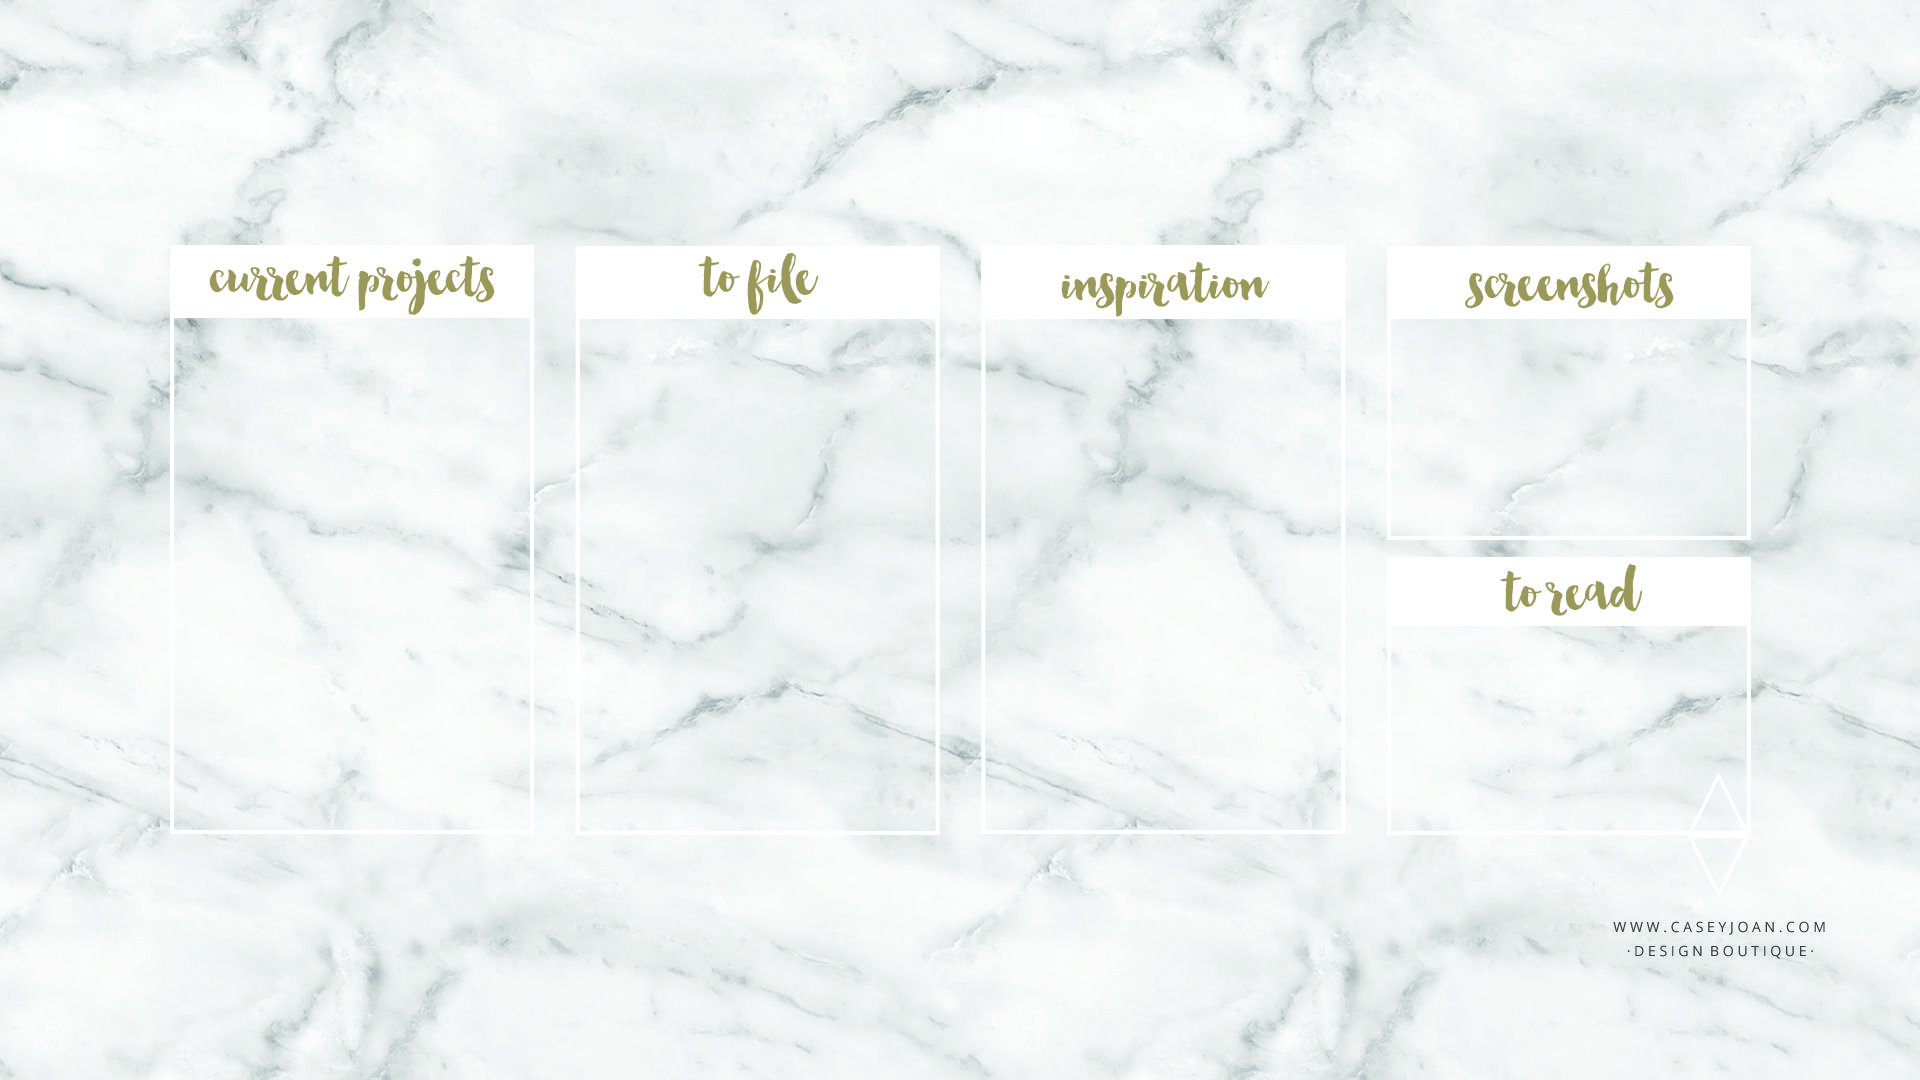 Caseyjoan Com Wp Content Uploads 2015 06 Marble Desktop Wallpaper 1920x1080 Jpg Marble Desktop Wallpaper Laptop Wallpaper Desktop Wallpaper Organizer